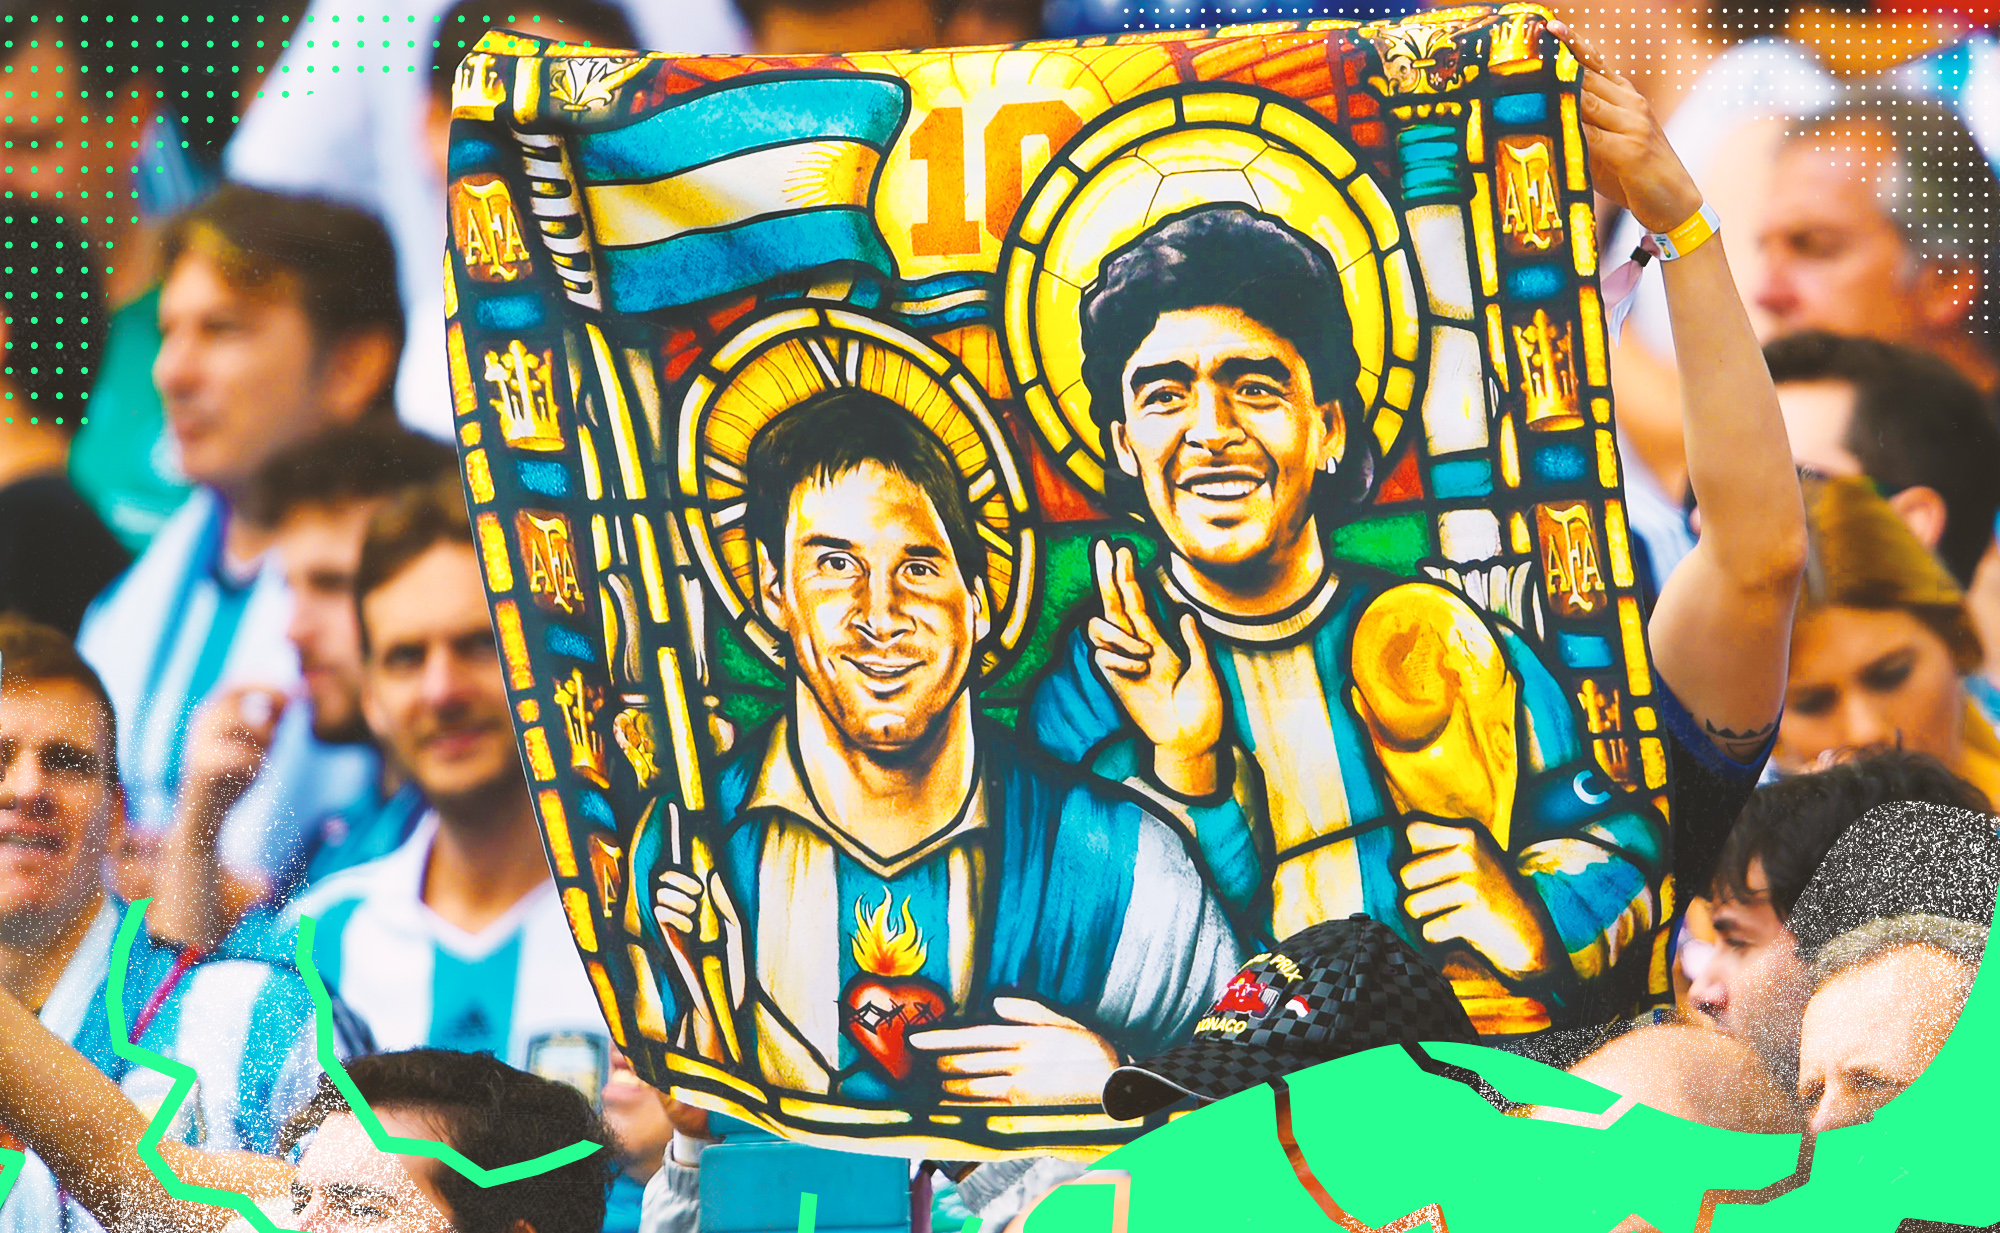 Banner held up by Argentina fans in a crowd depicts Lionel Messi and Diego Maradona painted as saints.